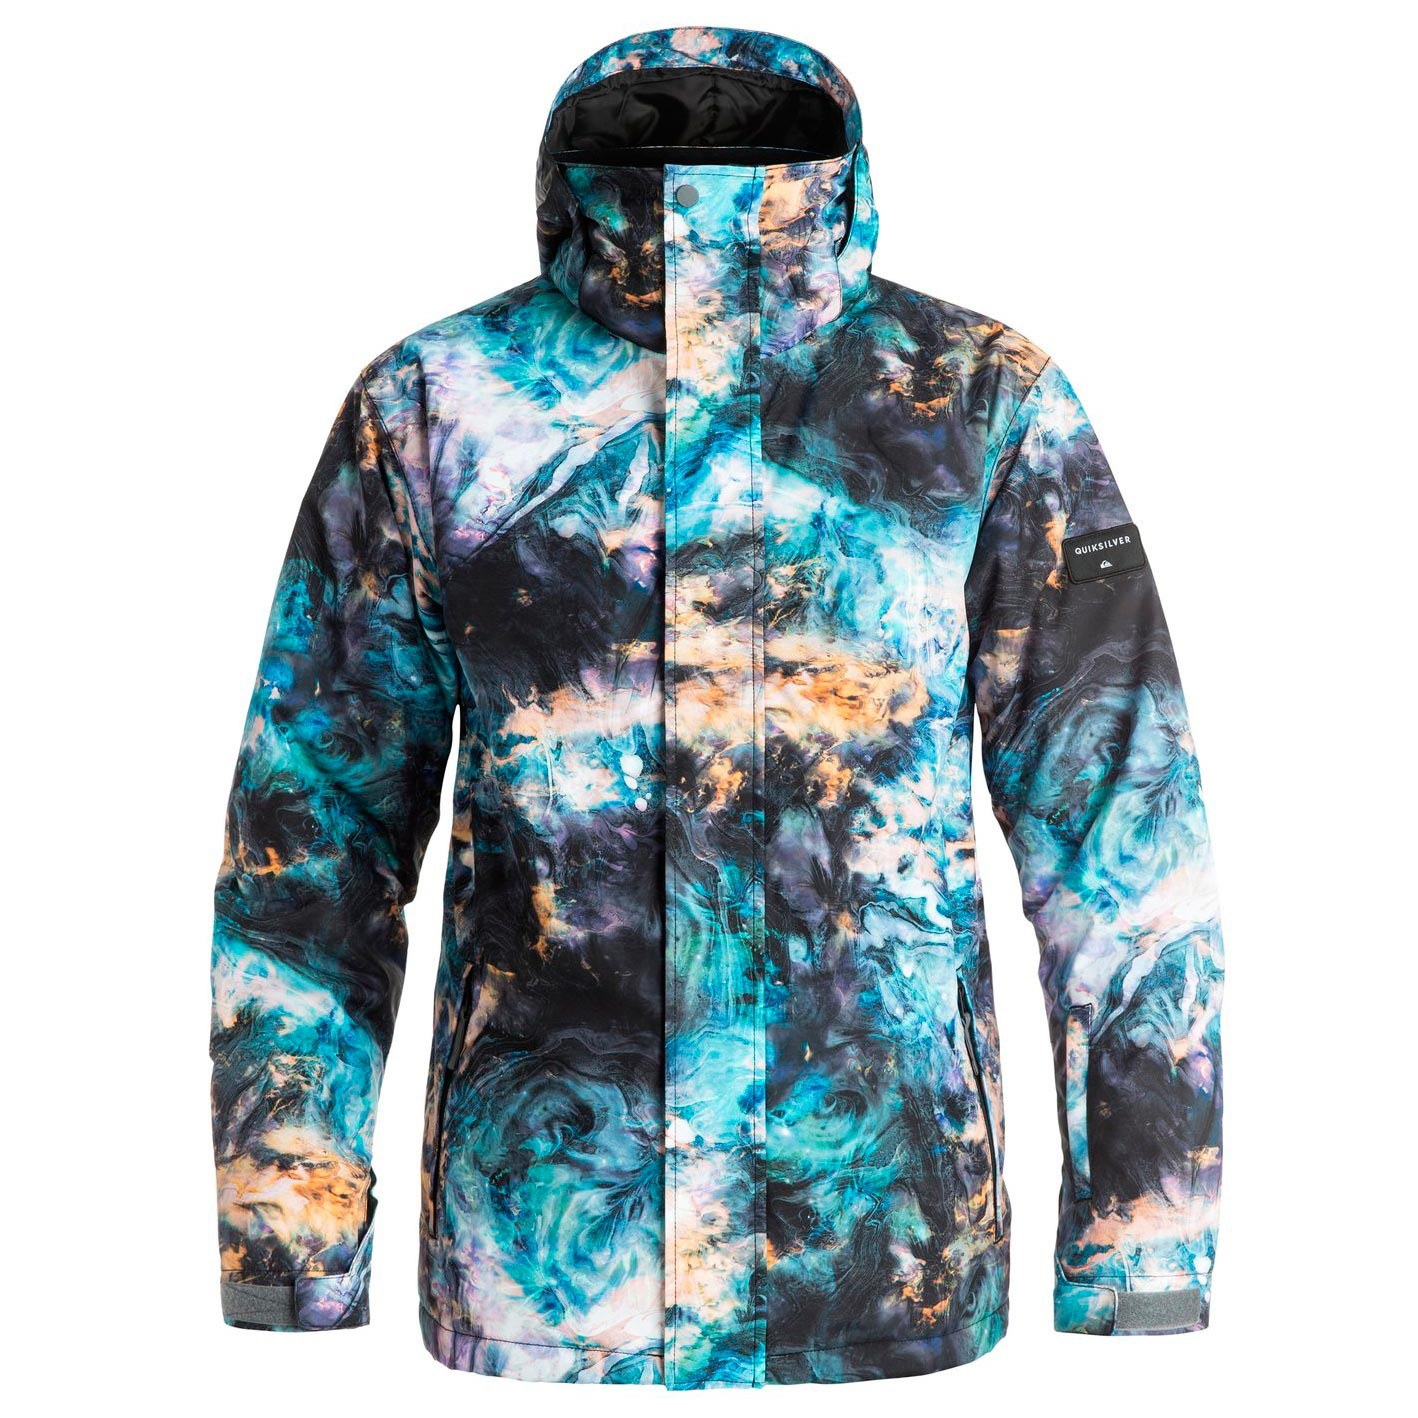 Bunda Quiksilver Mission Printed oil and space